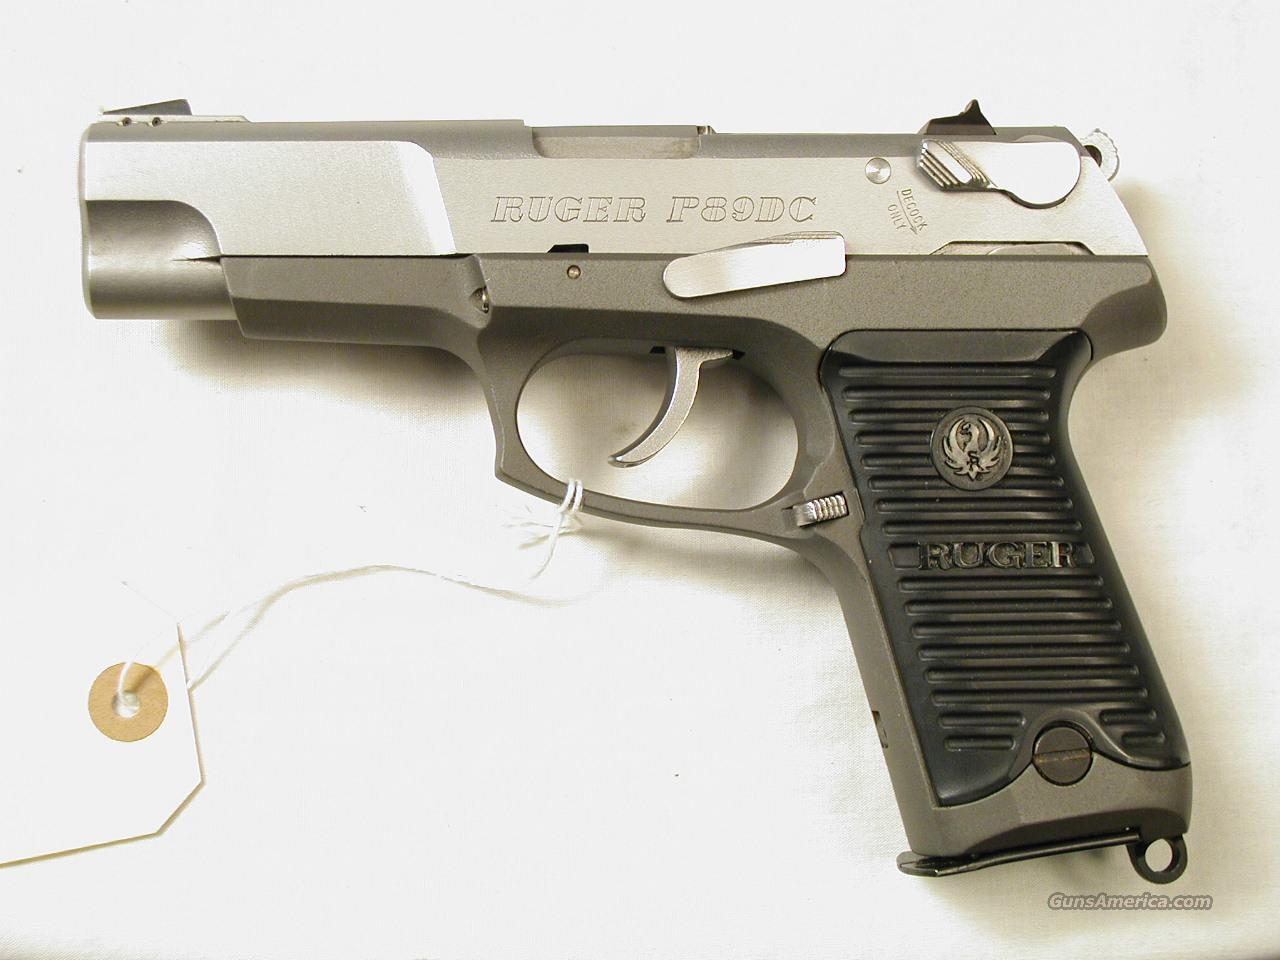 Lewis Auto Sales >> RUGER P89DC STAINLESS 9MM for sale